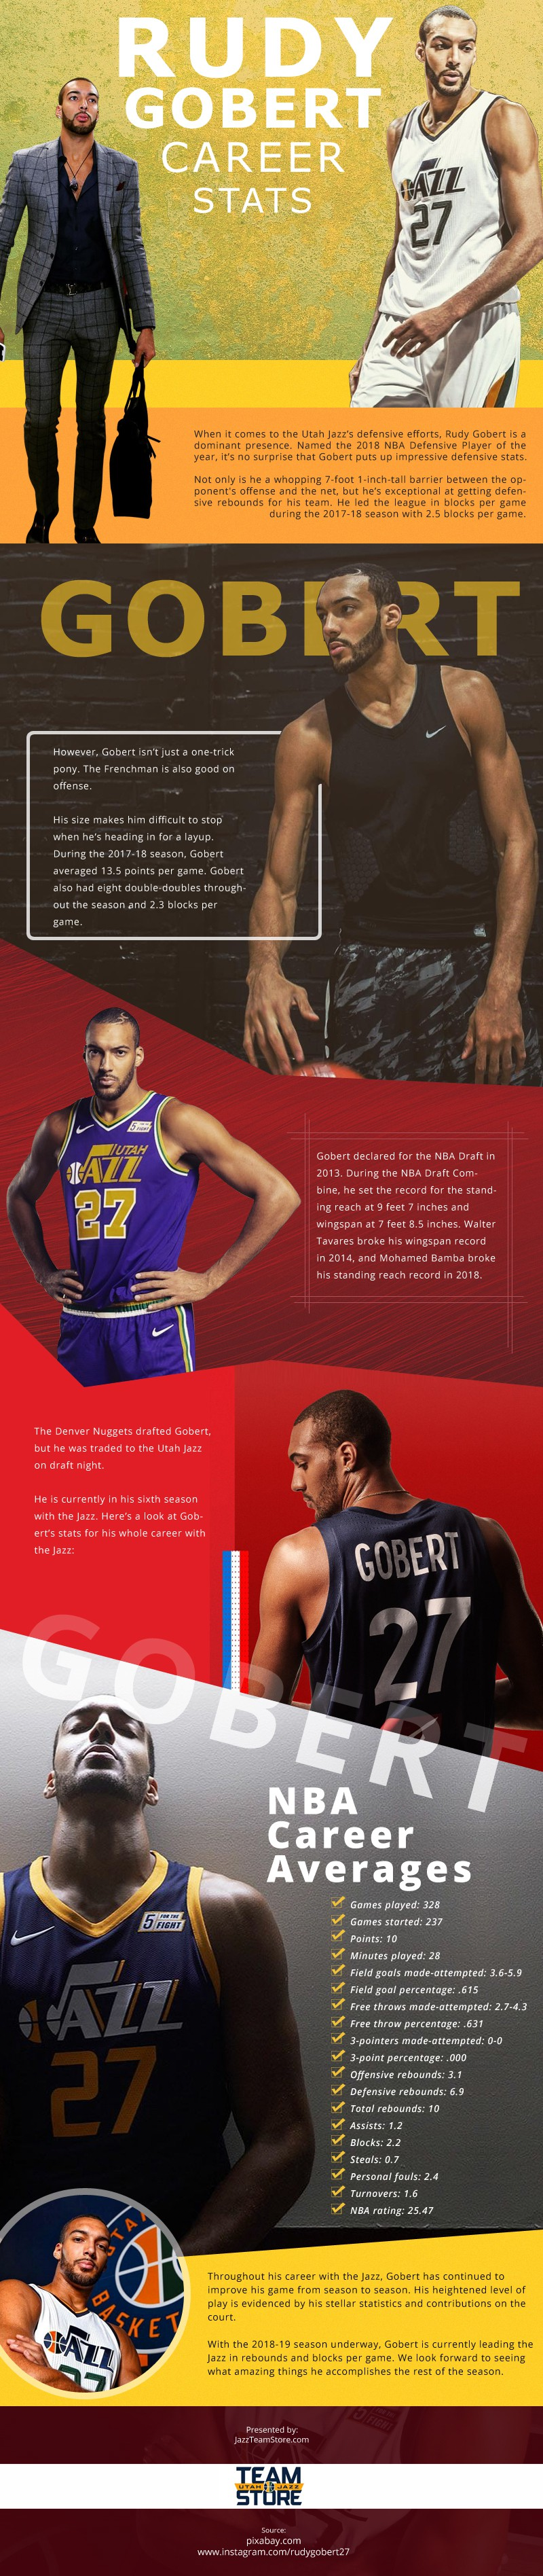 Rudy Gobert Career Stats Infographic